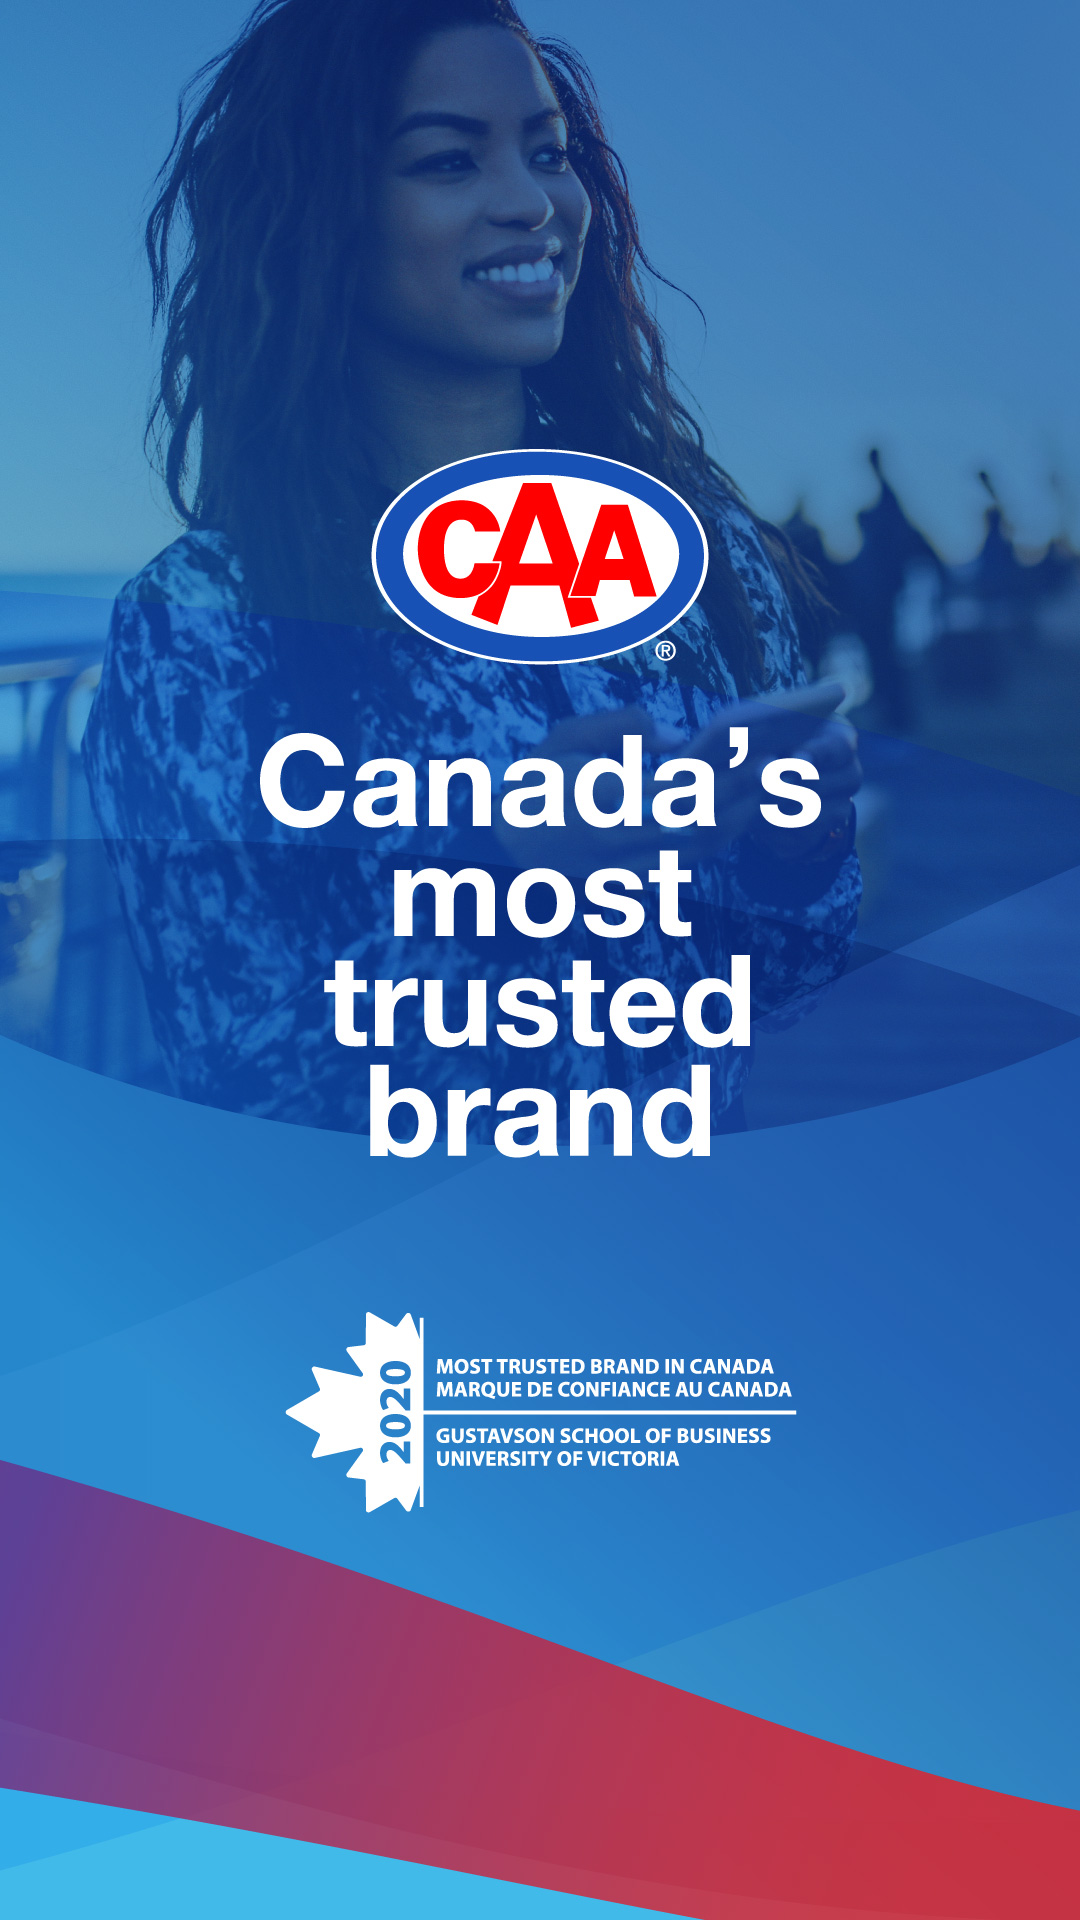 Image_Canada_most_trusted_brand